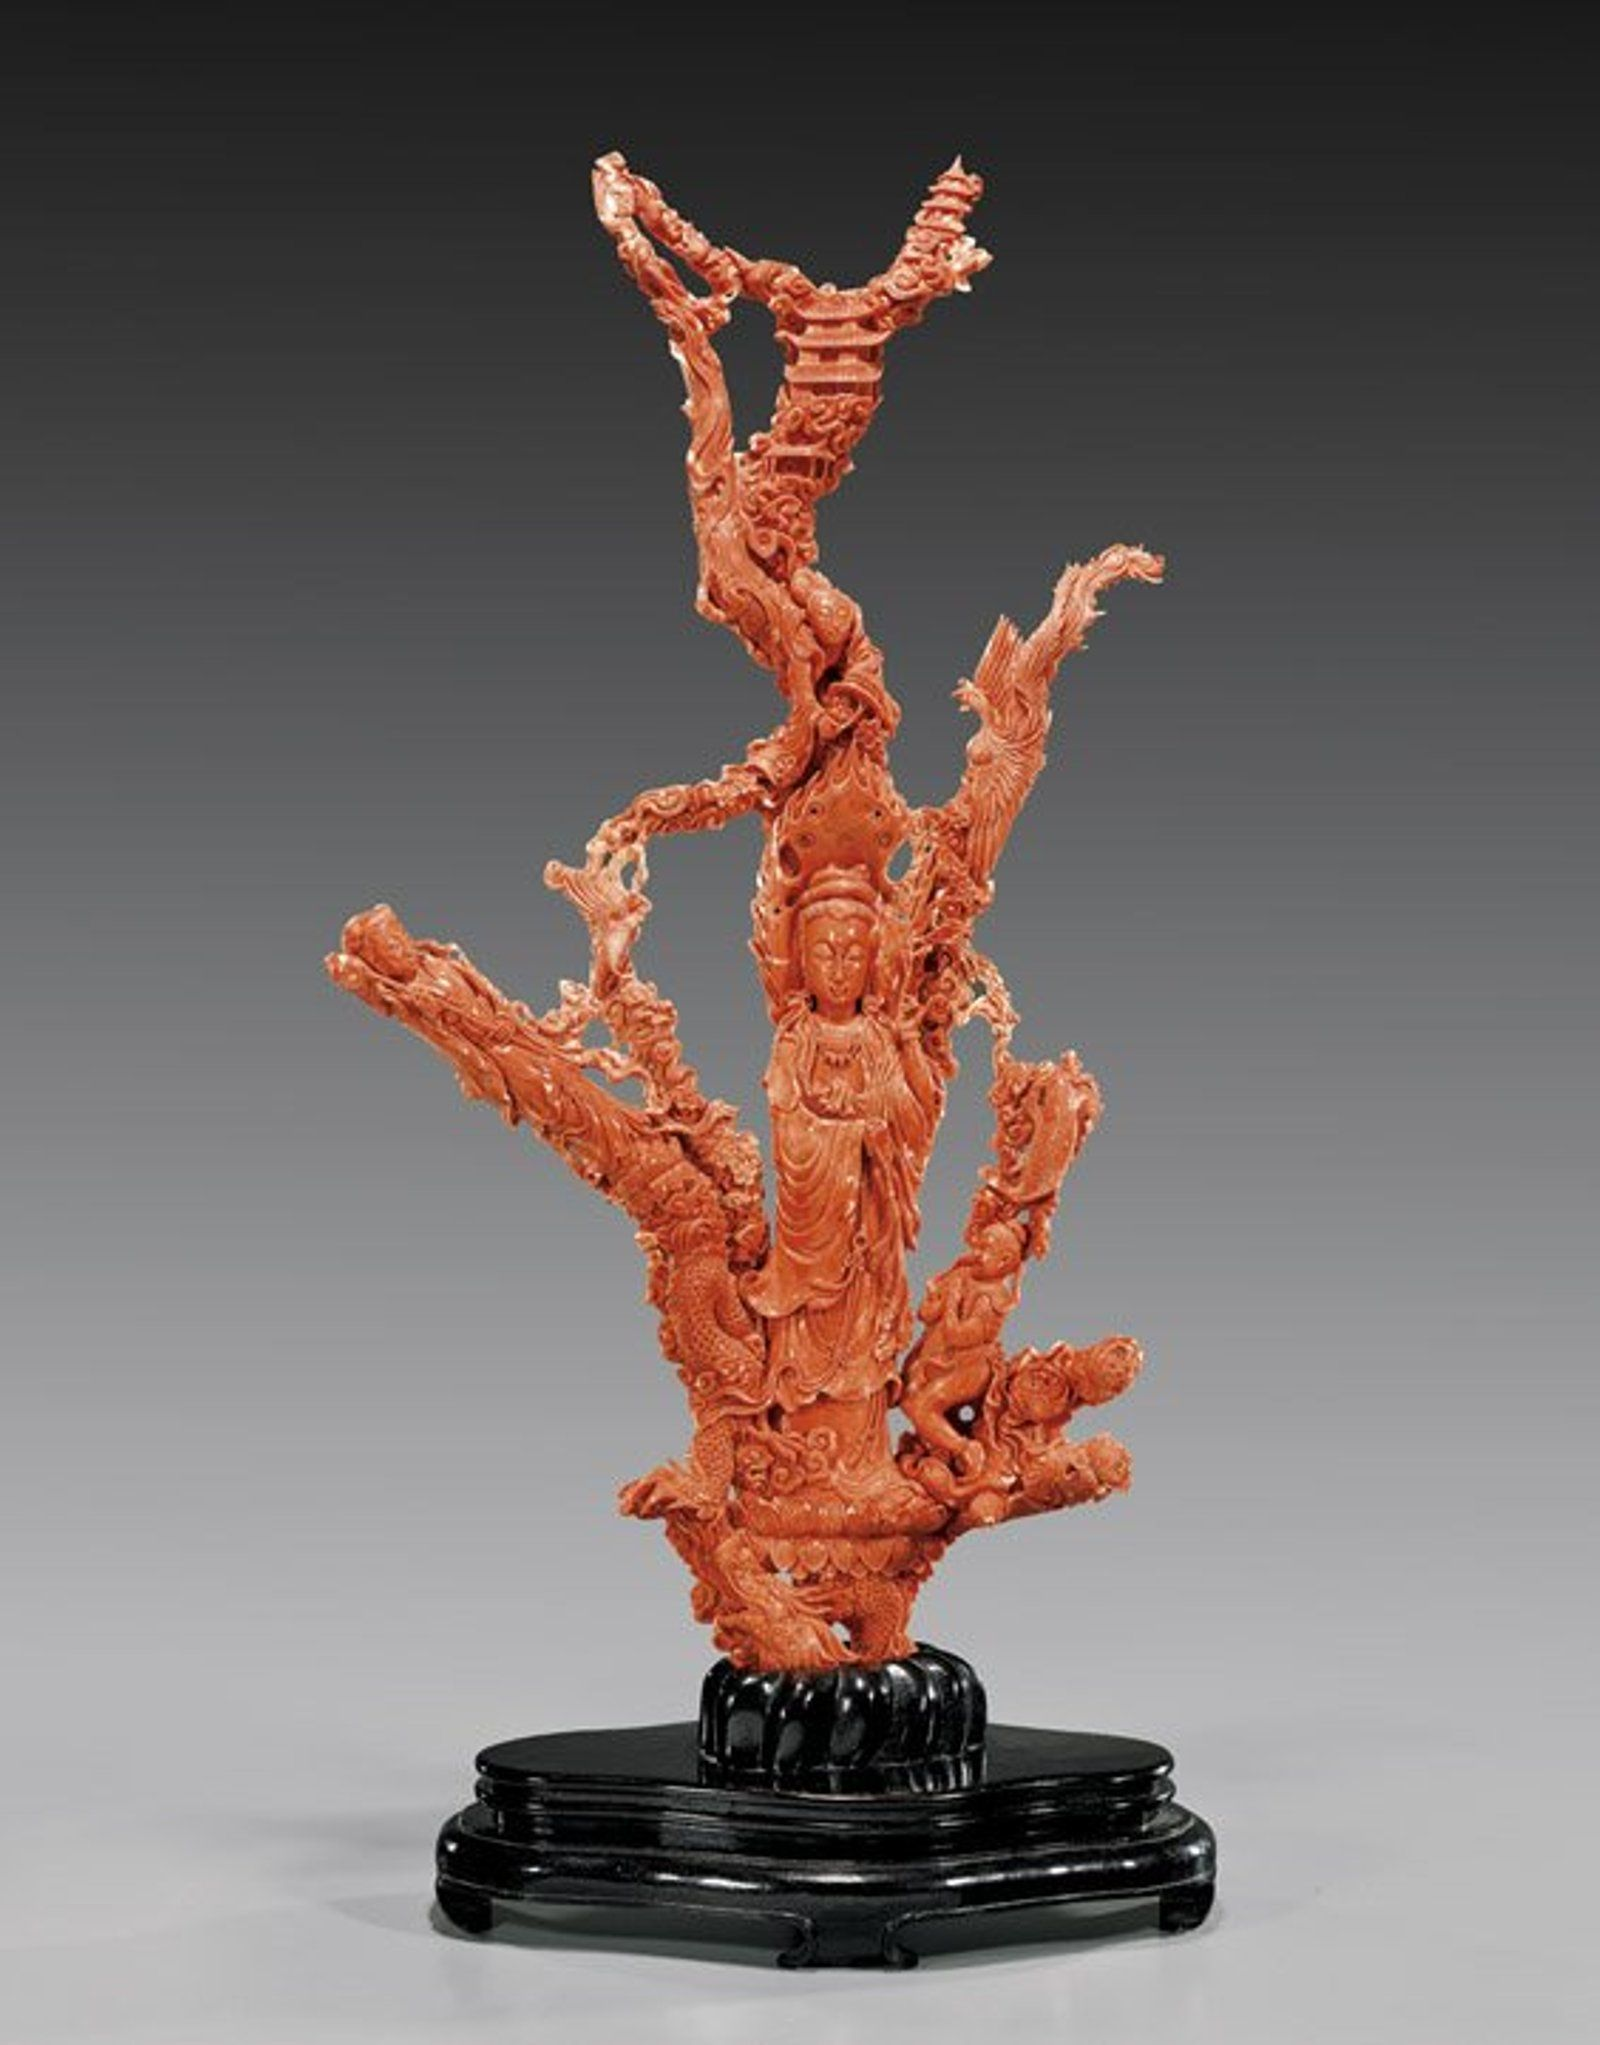 Massive Antique Carved Coral Group Jul 27 2014 I M Chait Gallery Auctioneers In Ca Coral Sculpture Carving Coral Art